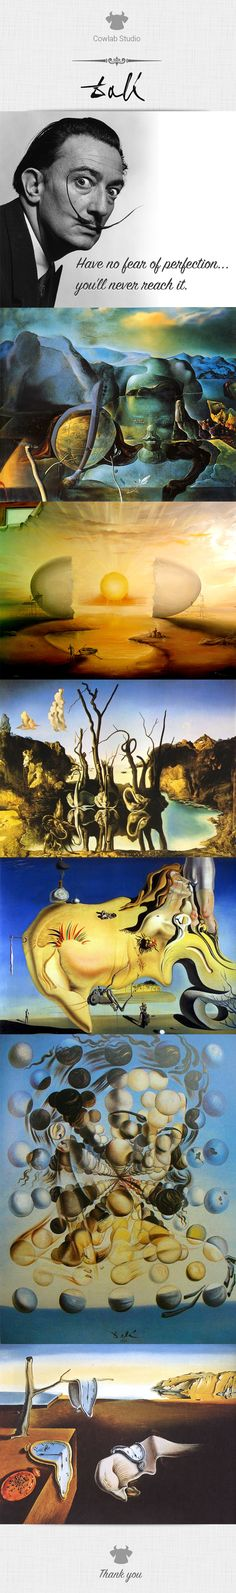 a biography of salvador felipe jacinto dali i domenech Salvador domingo felipe jacinto dalí i domènech, 1st marqués de dalí  as  salvador dalí, was a prominent spanish surrealist painter born in.